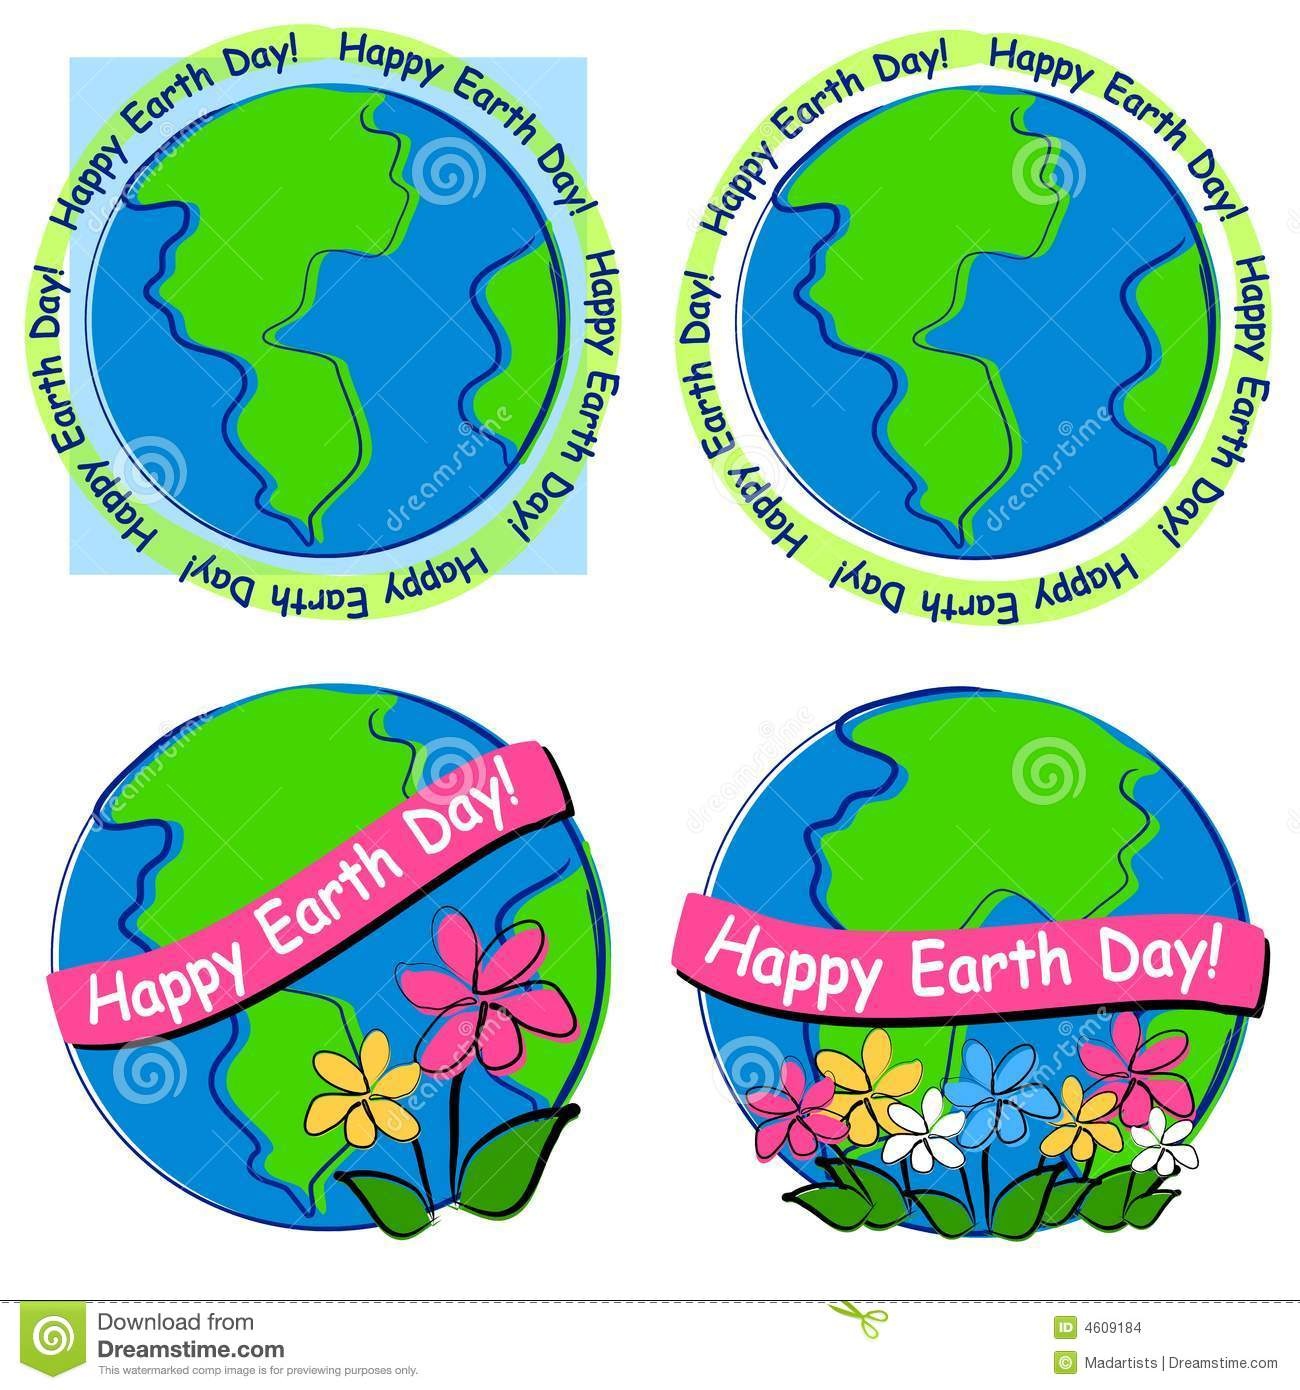 Happy Earth Day Clip Art Stock Photos, Images, & Pictures.